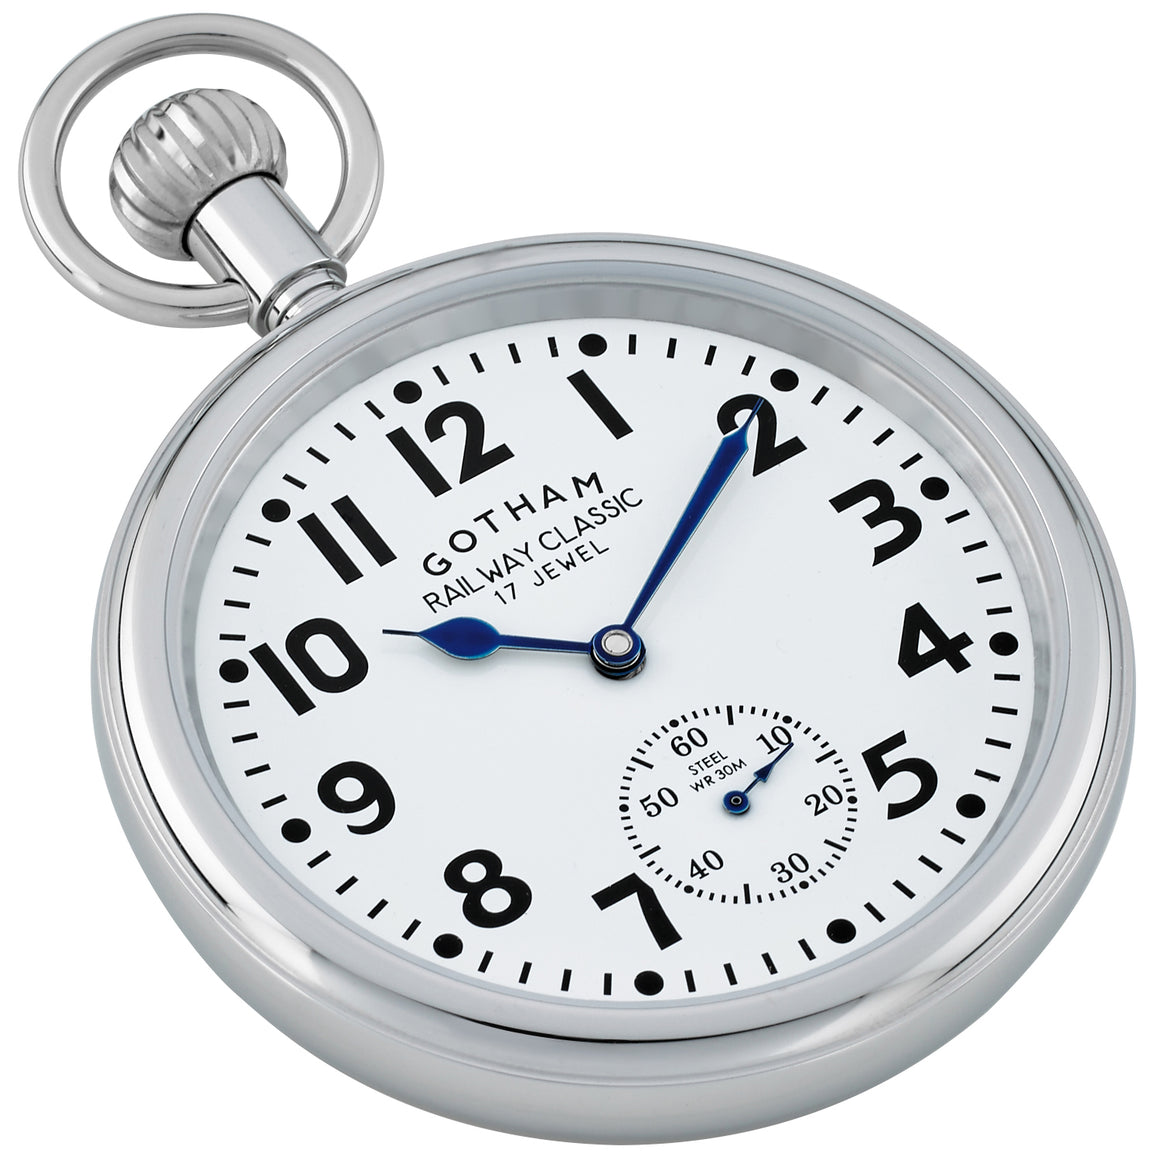 Gotham Men's Silver-Tone Stainless Steel 30M WR Mechanical Hand Wind Railroad Pocket Watch # GWC14104s - Gotham Watch